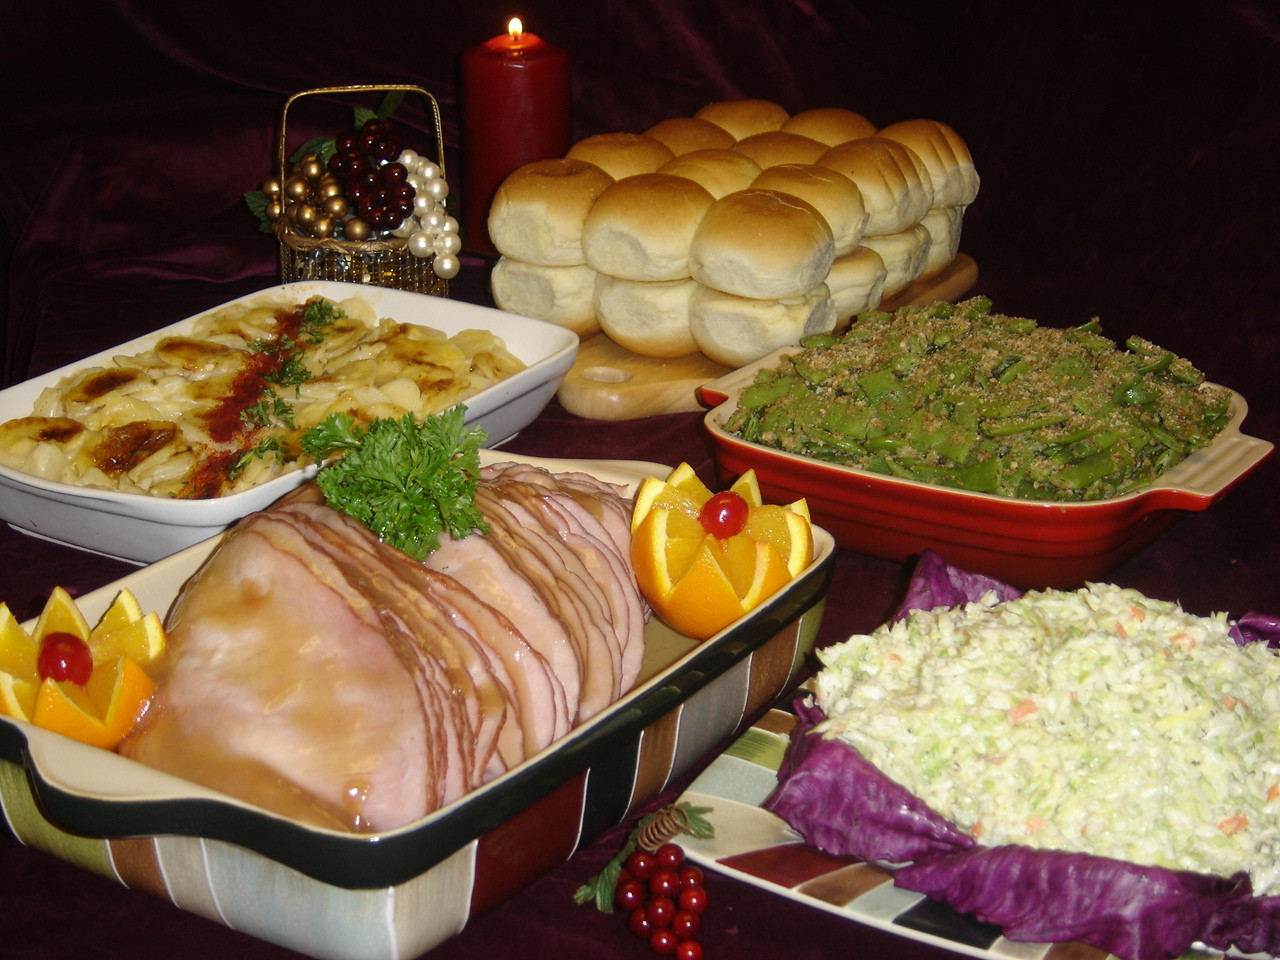 Menu For Easter Dinner  Hop into Schiff's for Easter Dinner made easy